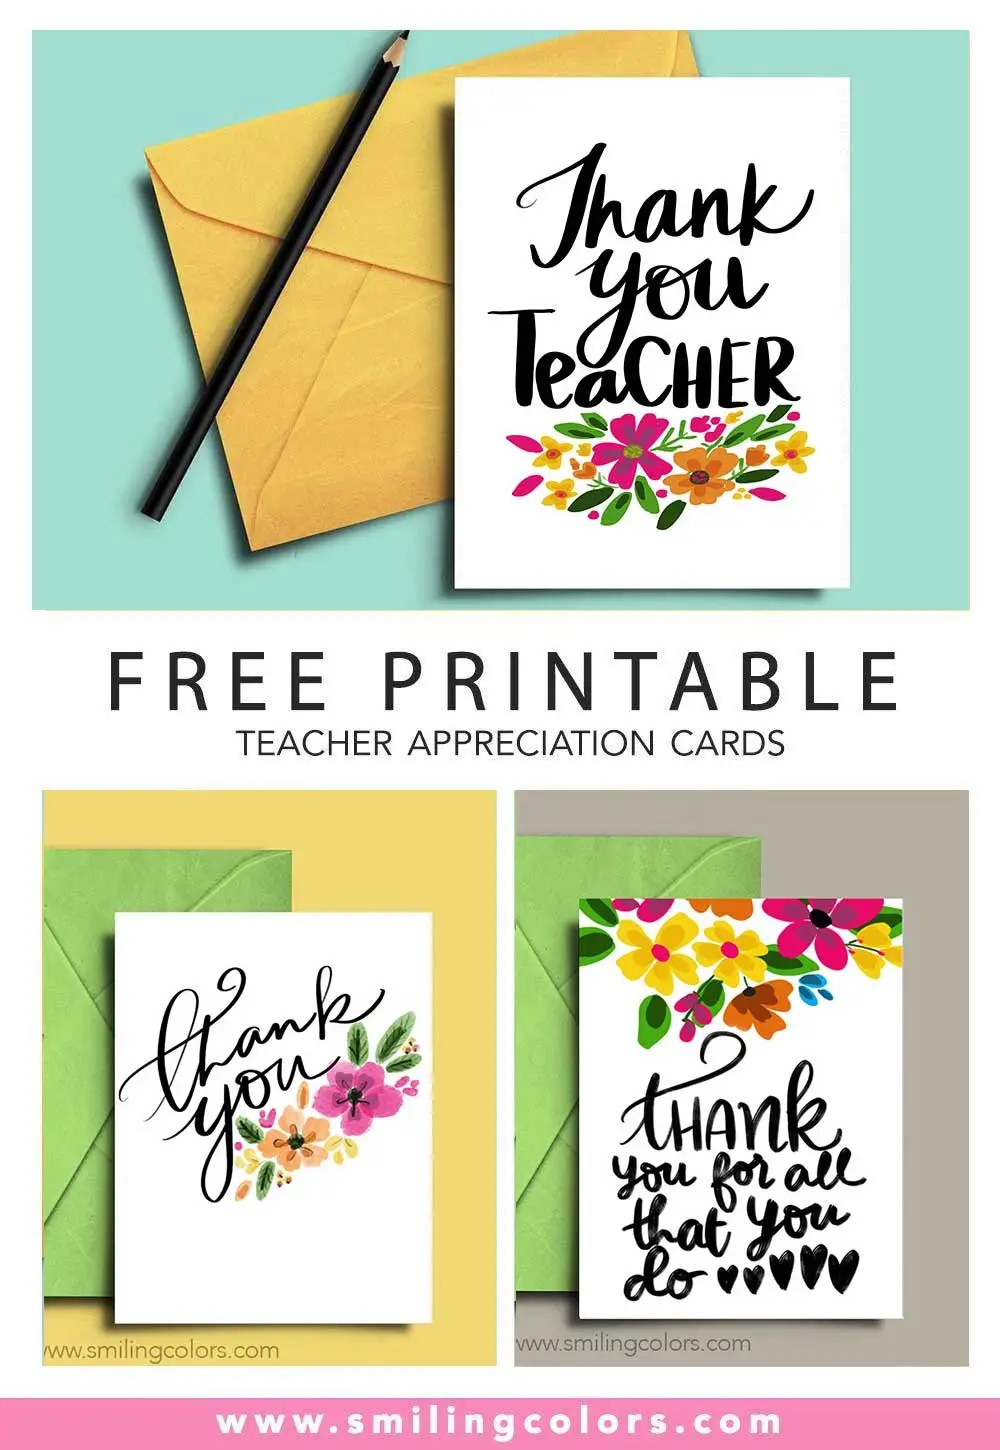 Thank you teacher: A set of FREE printable note cards ...